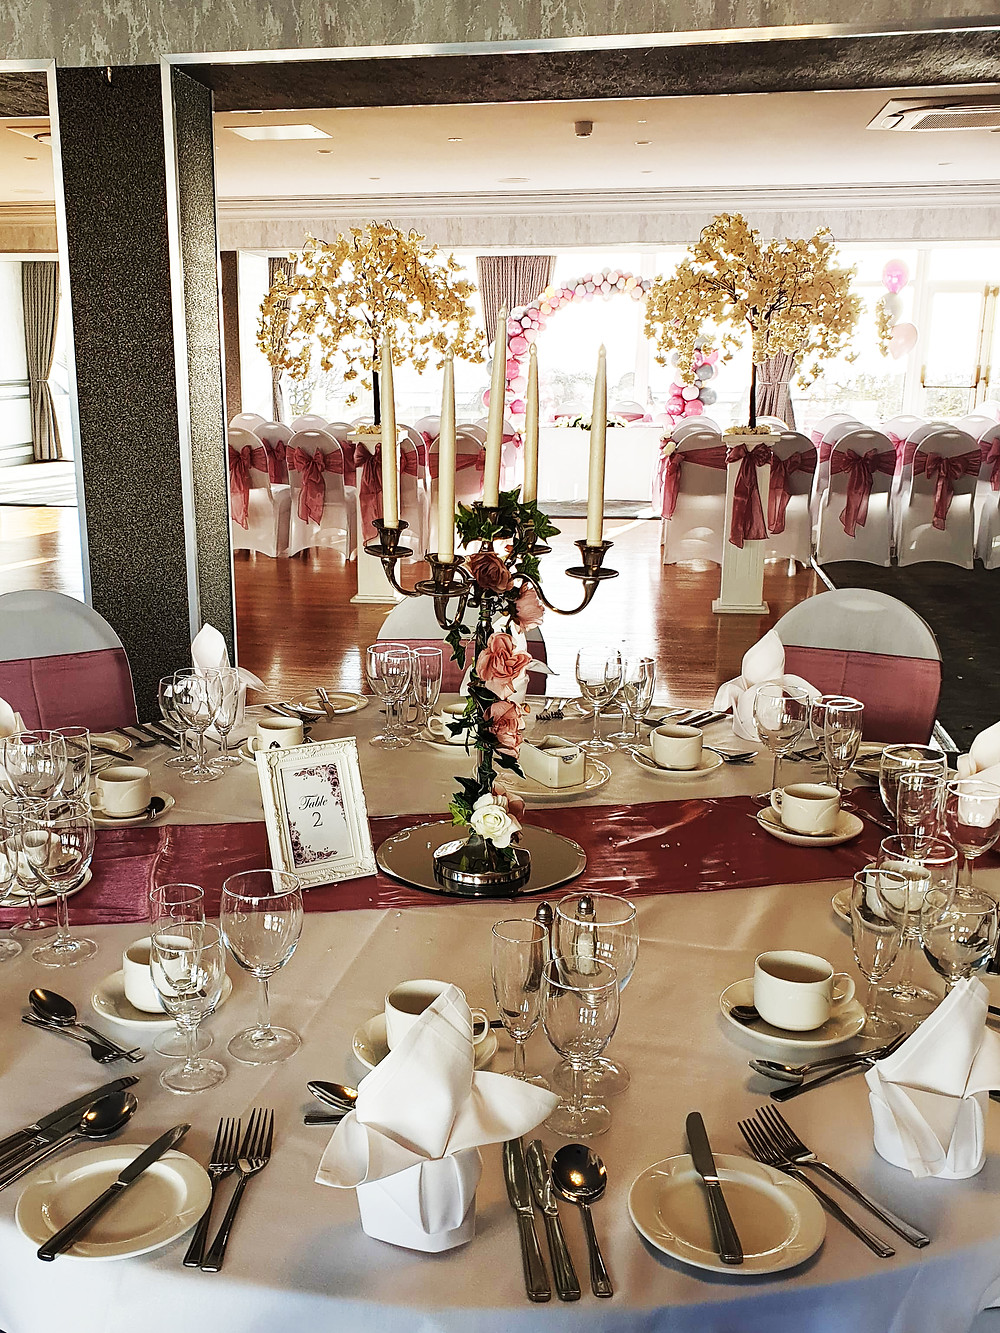 TABLE NUMBERS TABLE RUNNERS CANDELABRAS TRAILING IVY ROSES NAPKINS CHAIR COVERS MAUVE CHAIR SASHES MAUVE PINK BLOSSOM TREES COLUNMS BALLOON ARCH GLASSES CUPS KNIVES FOLKS RUSTIC WEDDING CLASSIC WEDDING LOOK